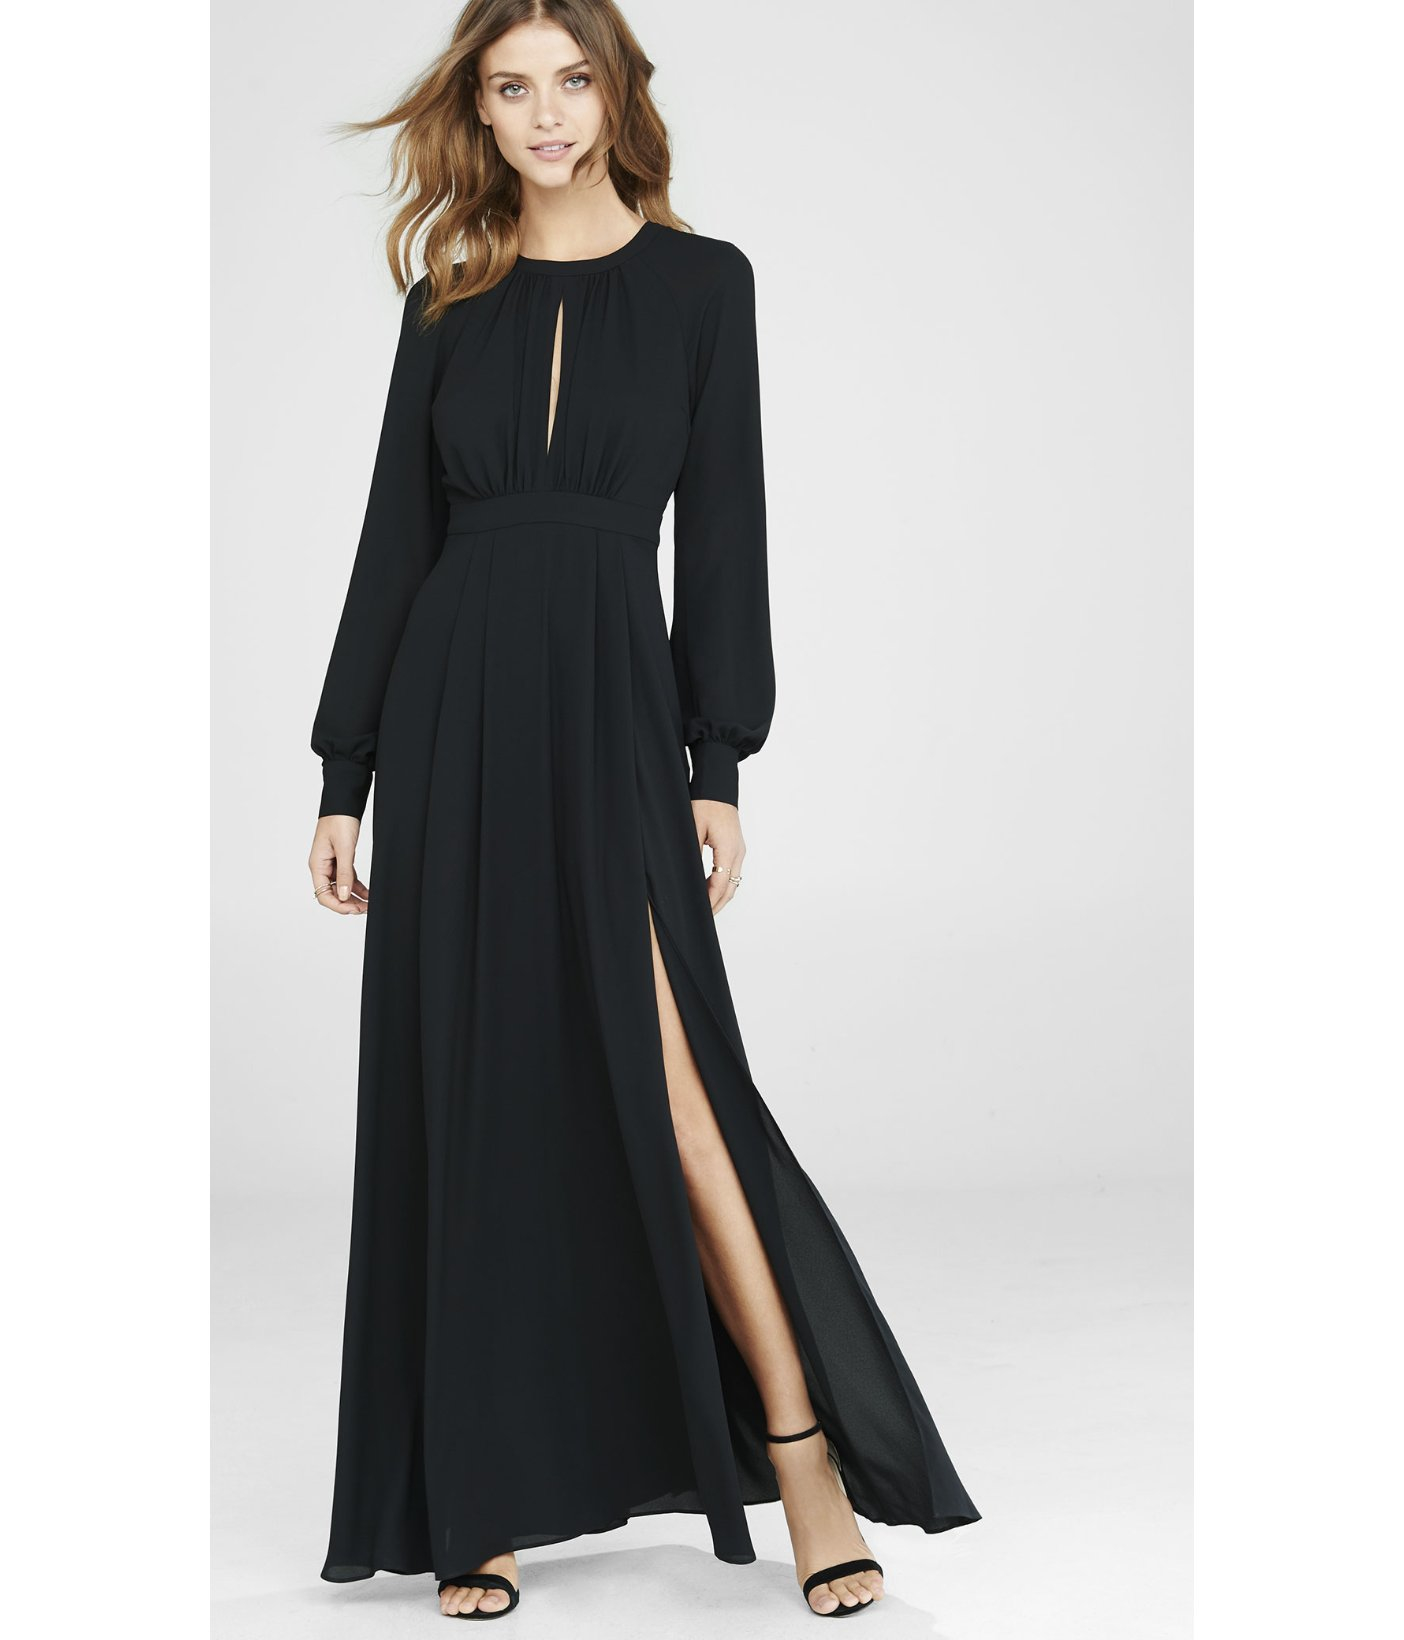 lyst express black poet sleeve maxi dress in black